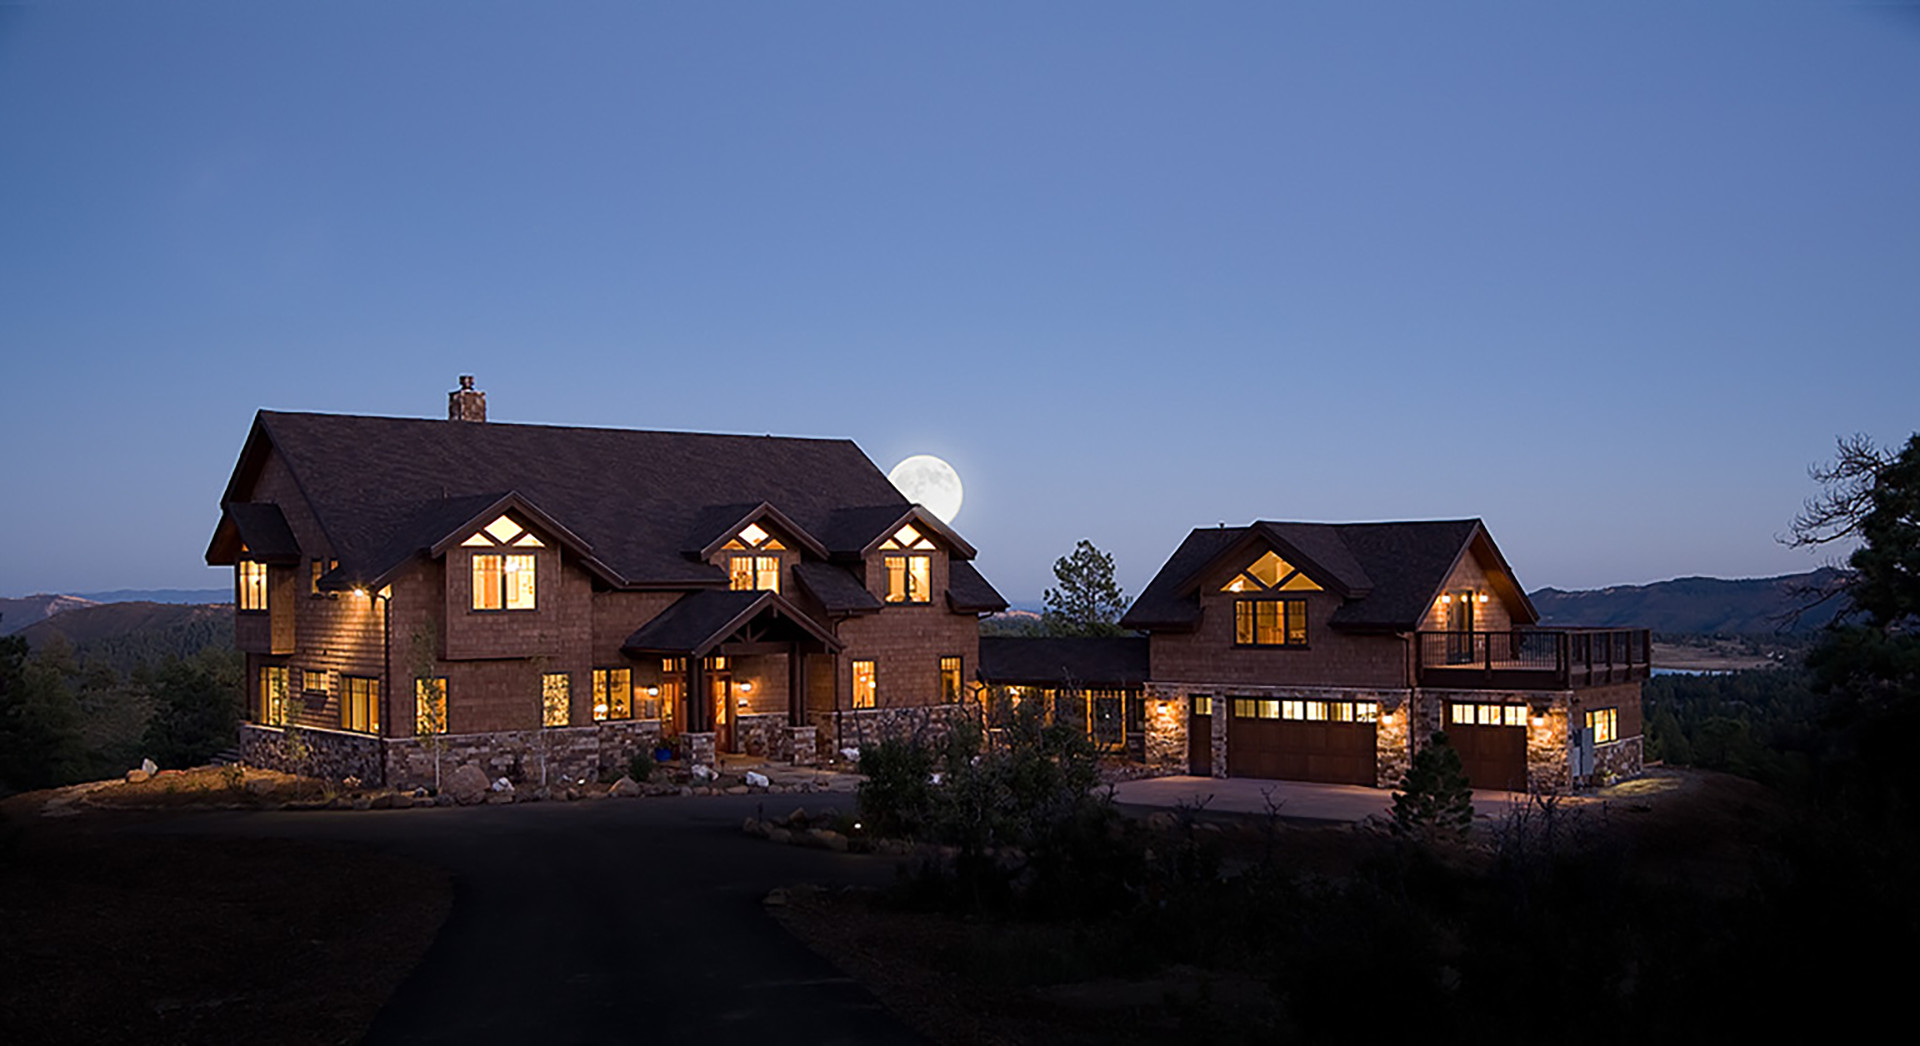 Mantell-Hecathorn Builders - 2007 Durango Area Parade of Homes Winner